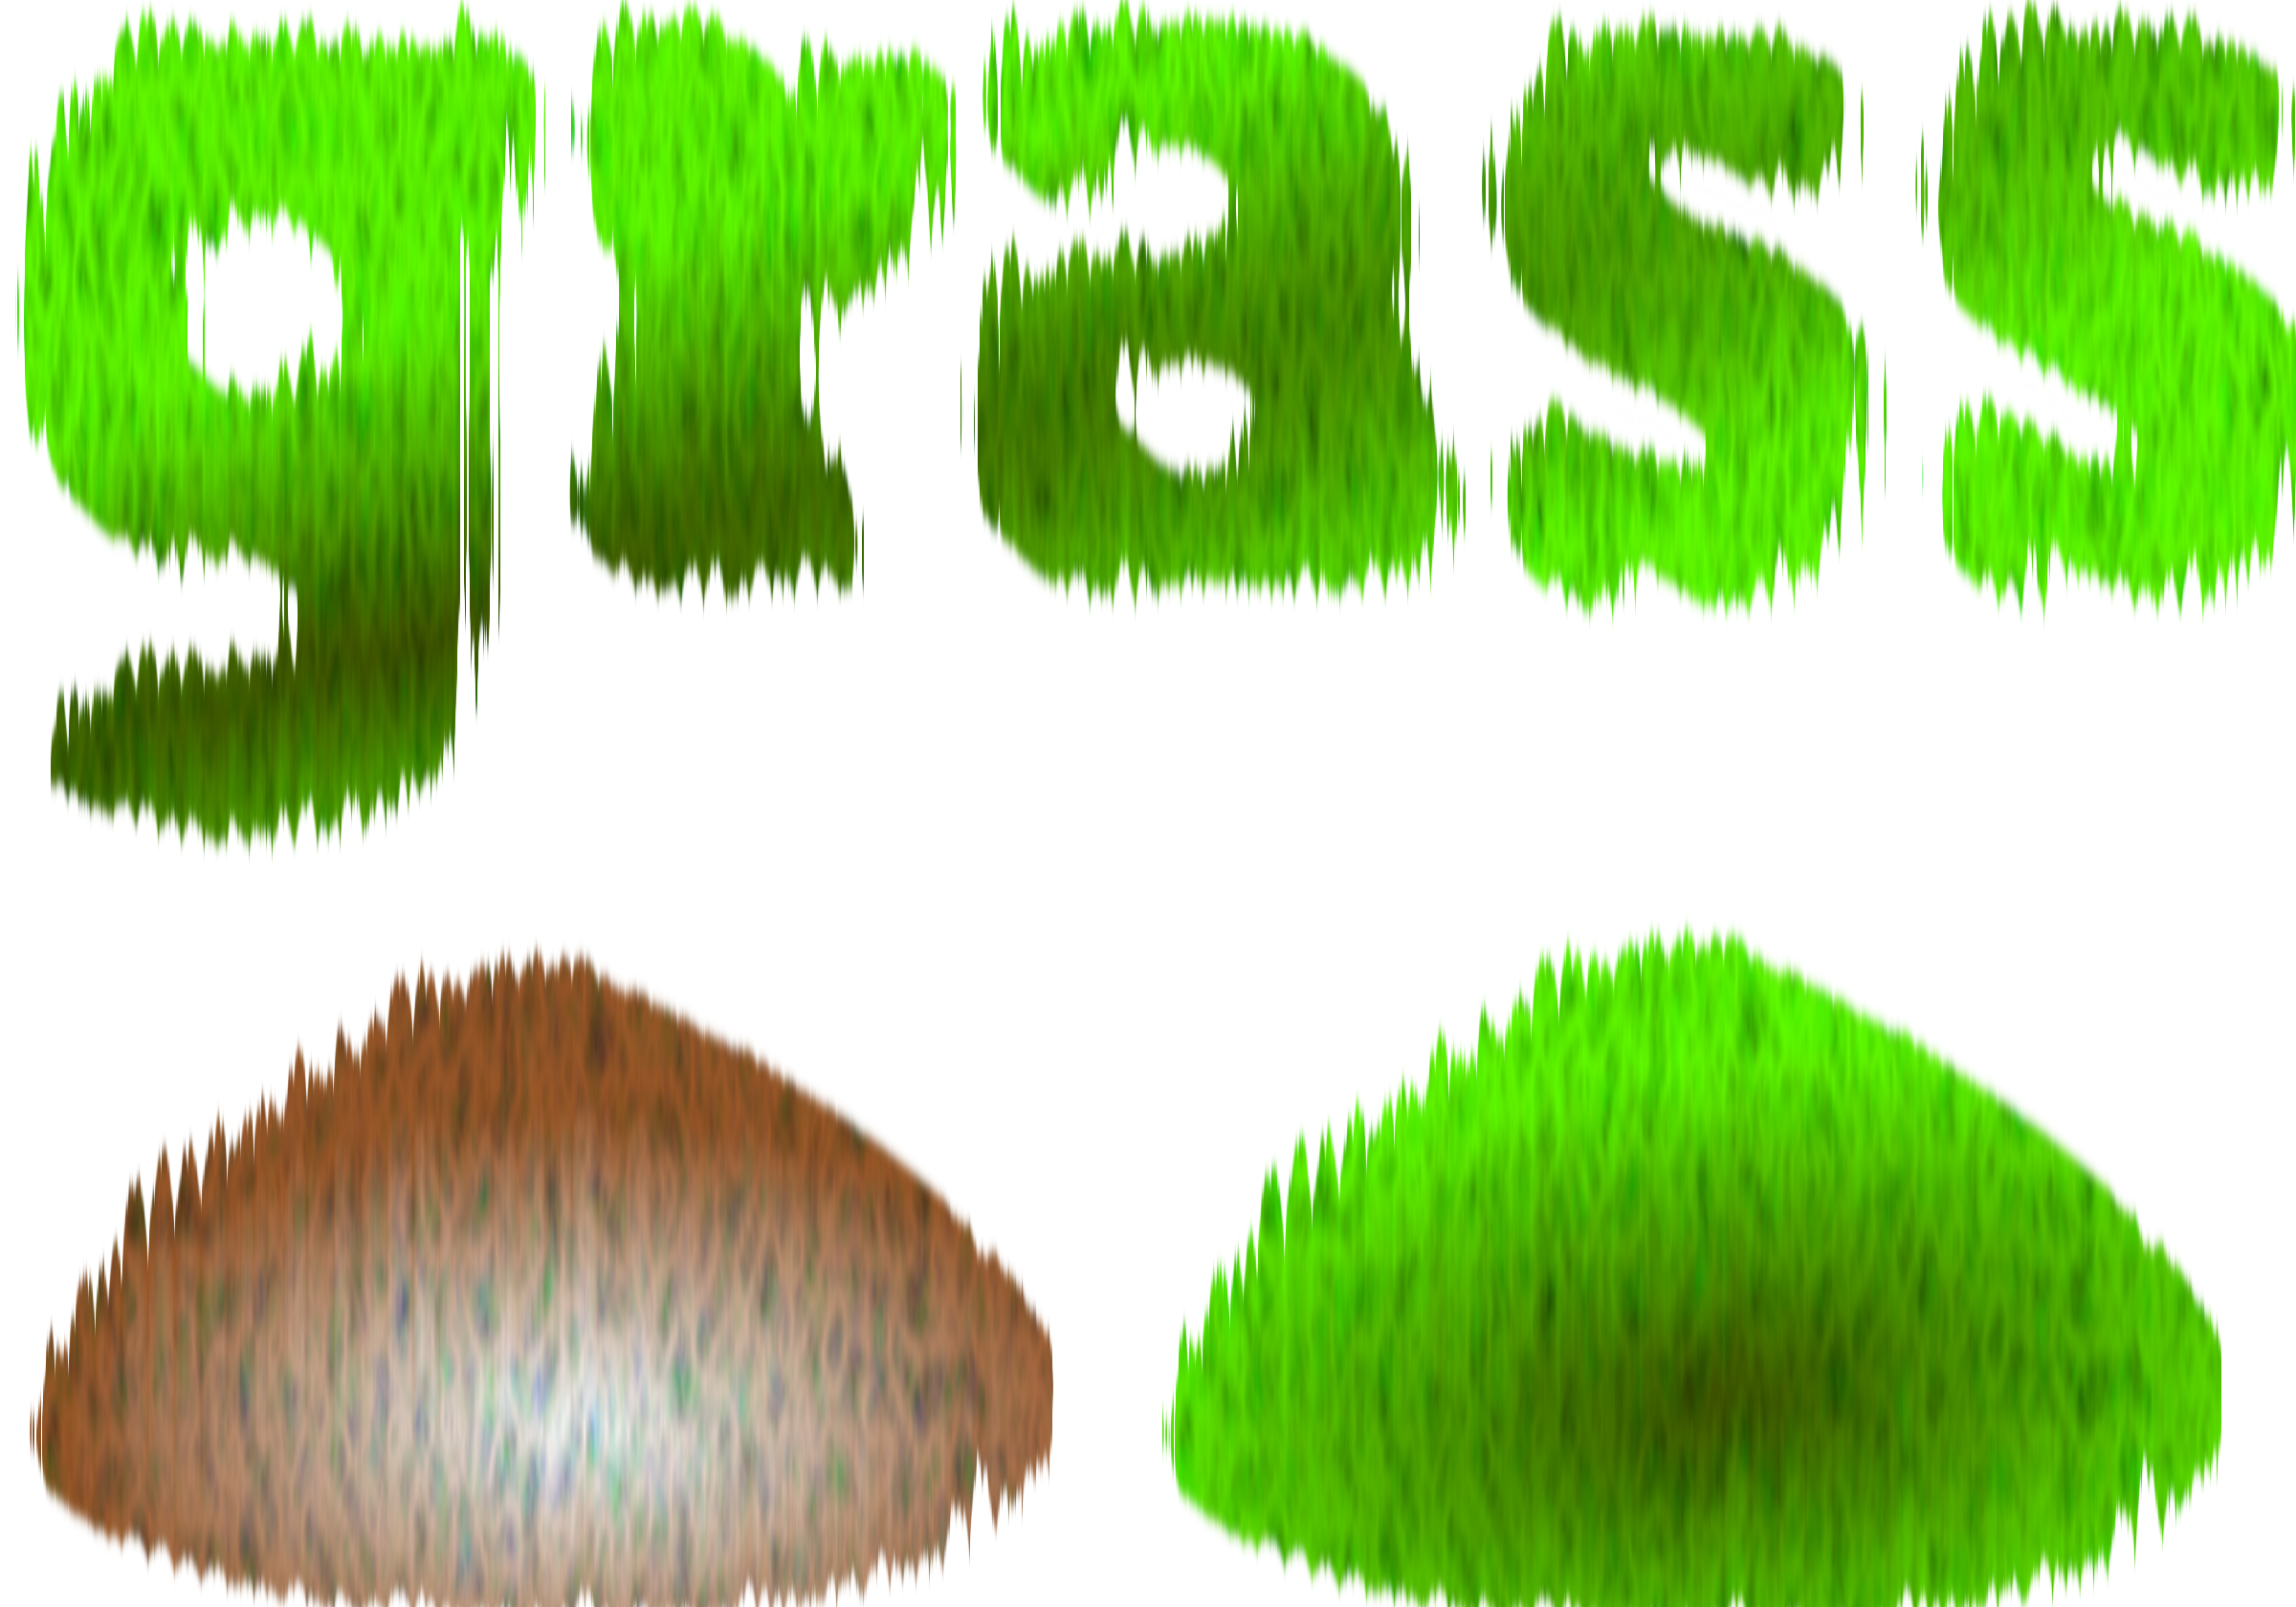 Grass Filter by wsnaccad